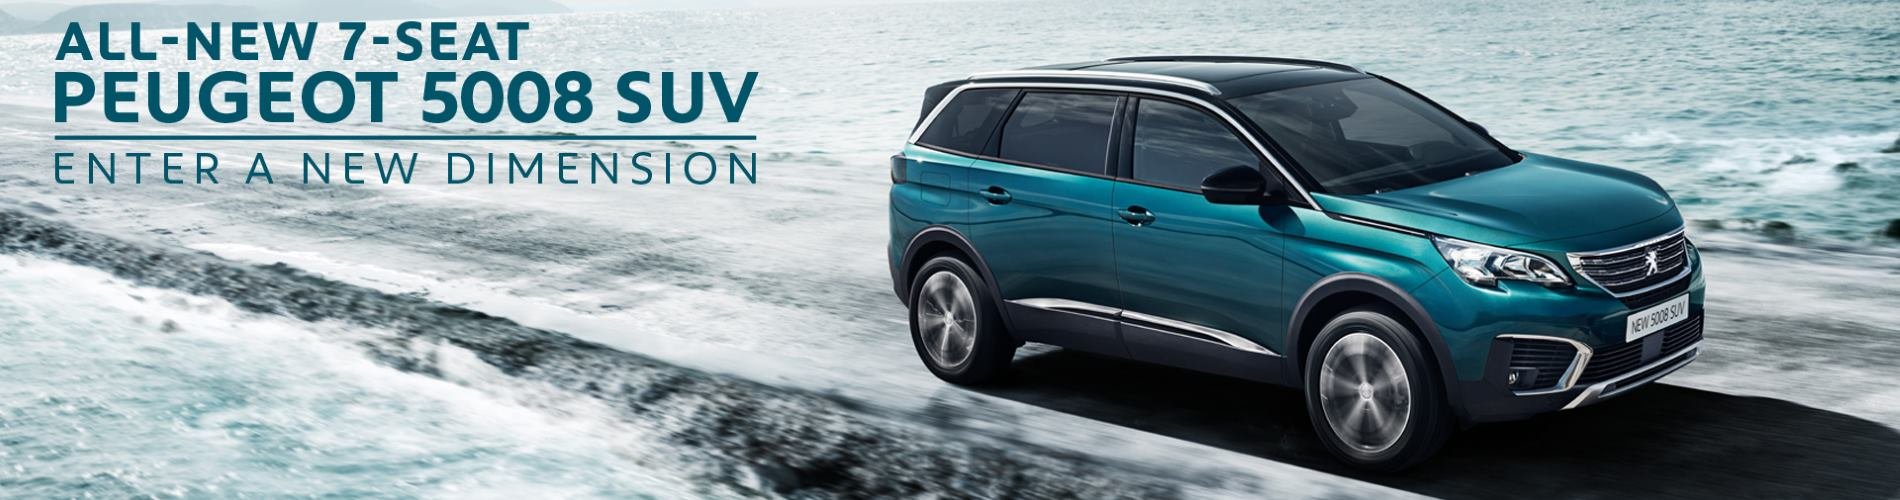 New Peugeot 5008 S U V Offer at Wycliffe Peugeot Rugby